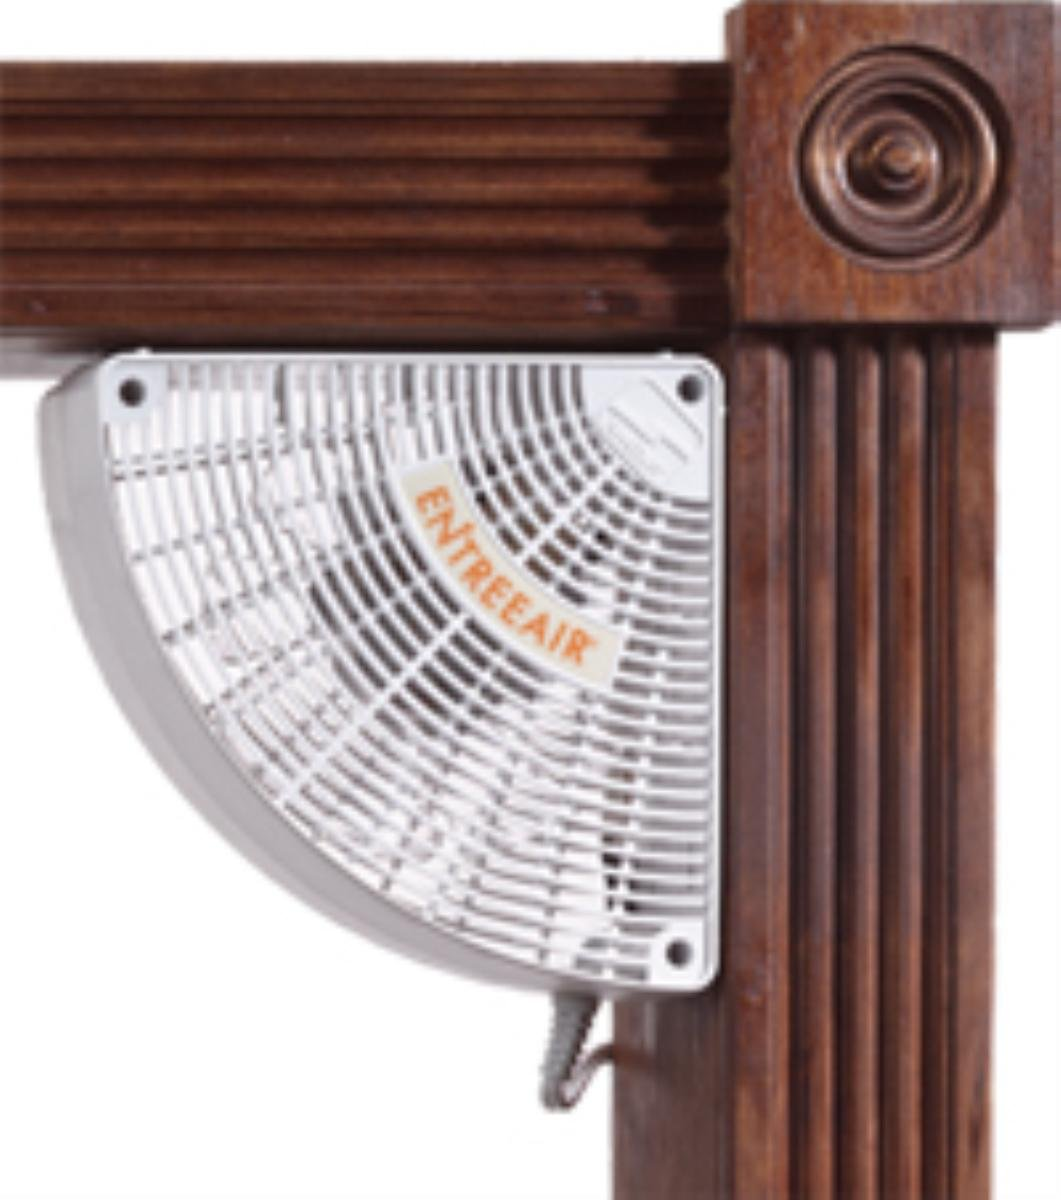 Delicieux Amazon.com: Suncourt EntreeAir Door Frame Booster Fan RR100: Home U0026 Kitchen